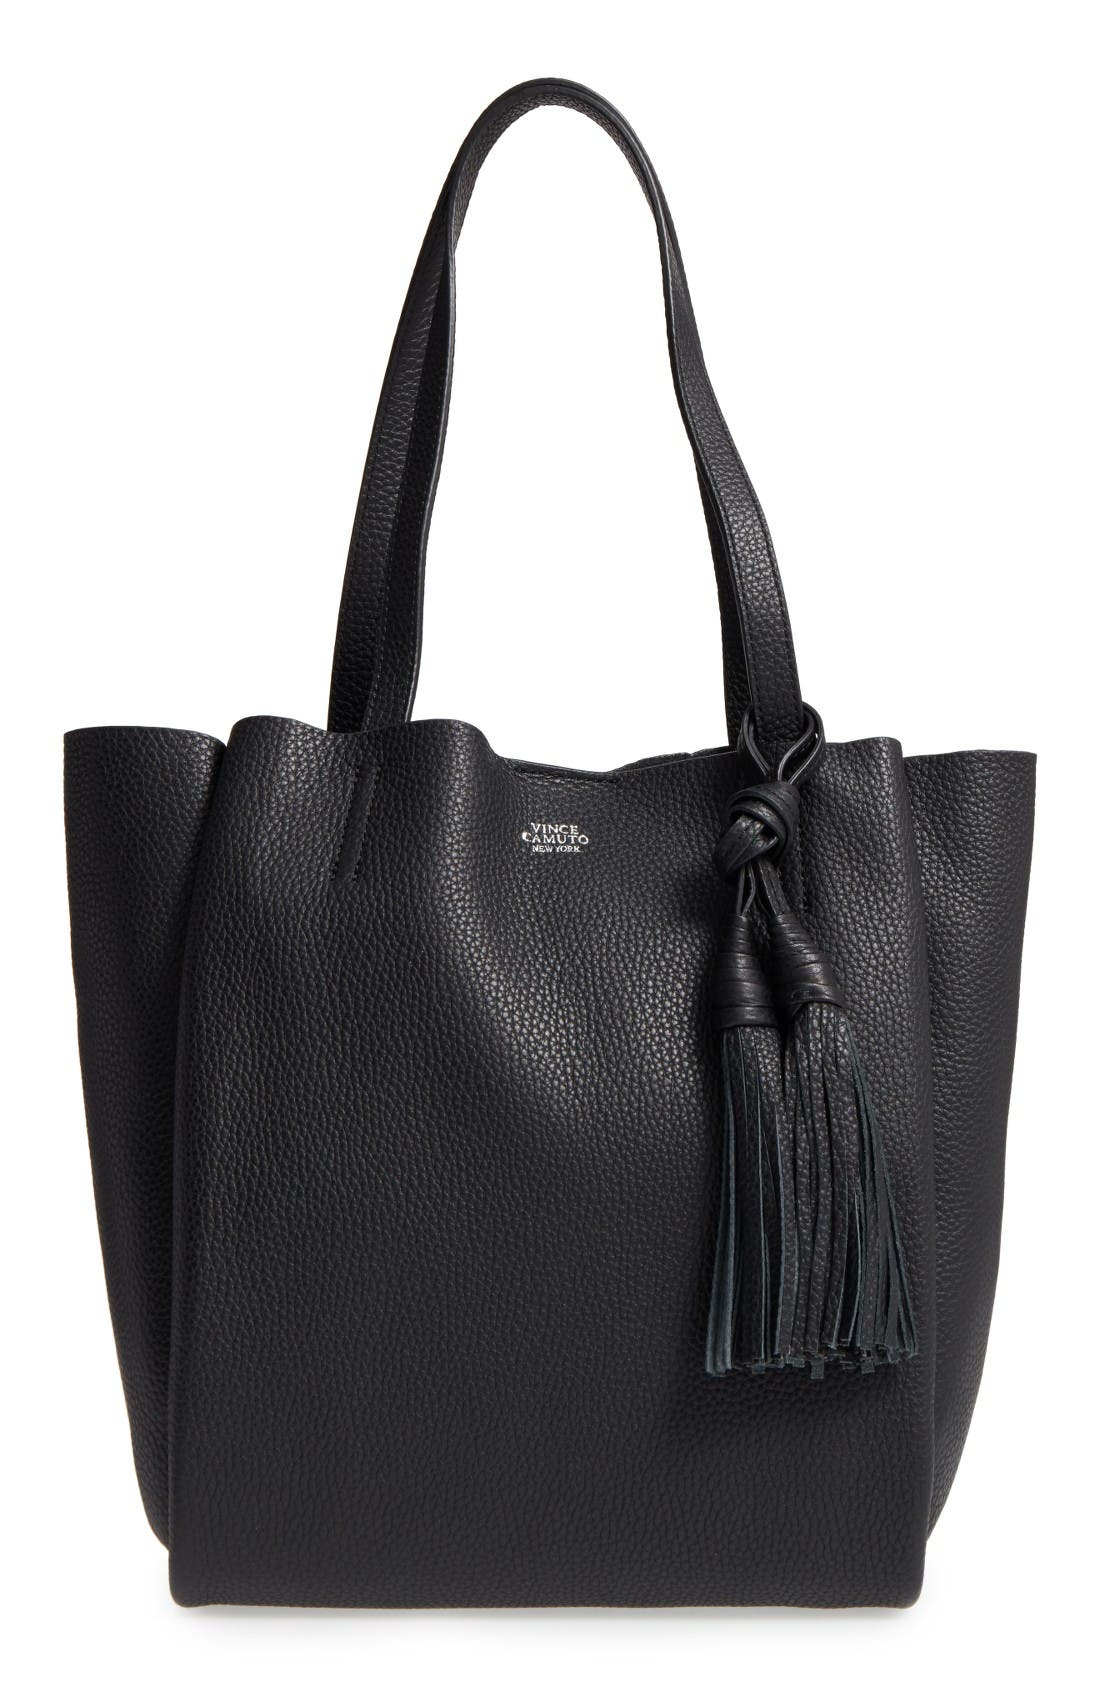 Alternate Image 1 Selected - Vince Camuto Small Taja Leather Tote with Tassel Charm